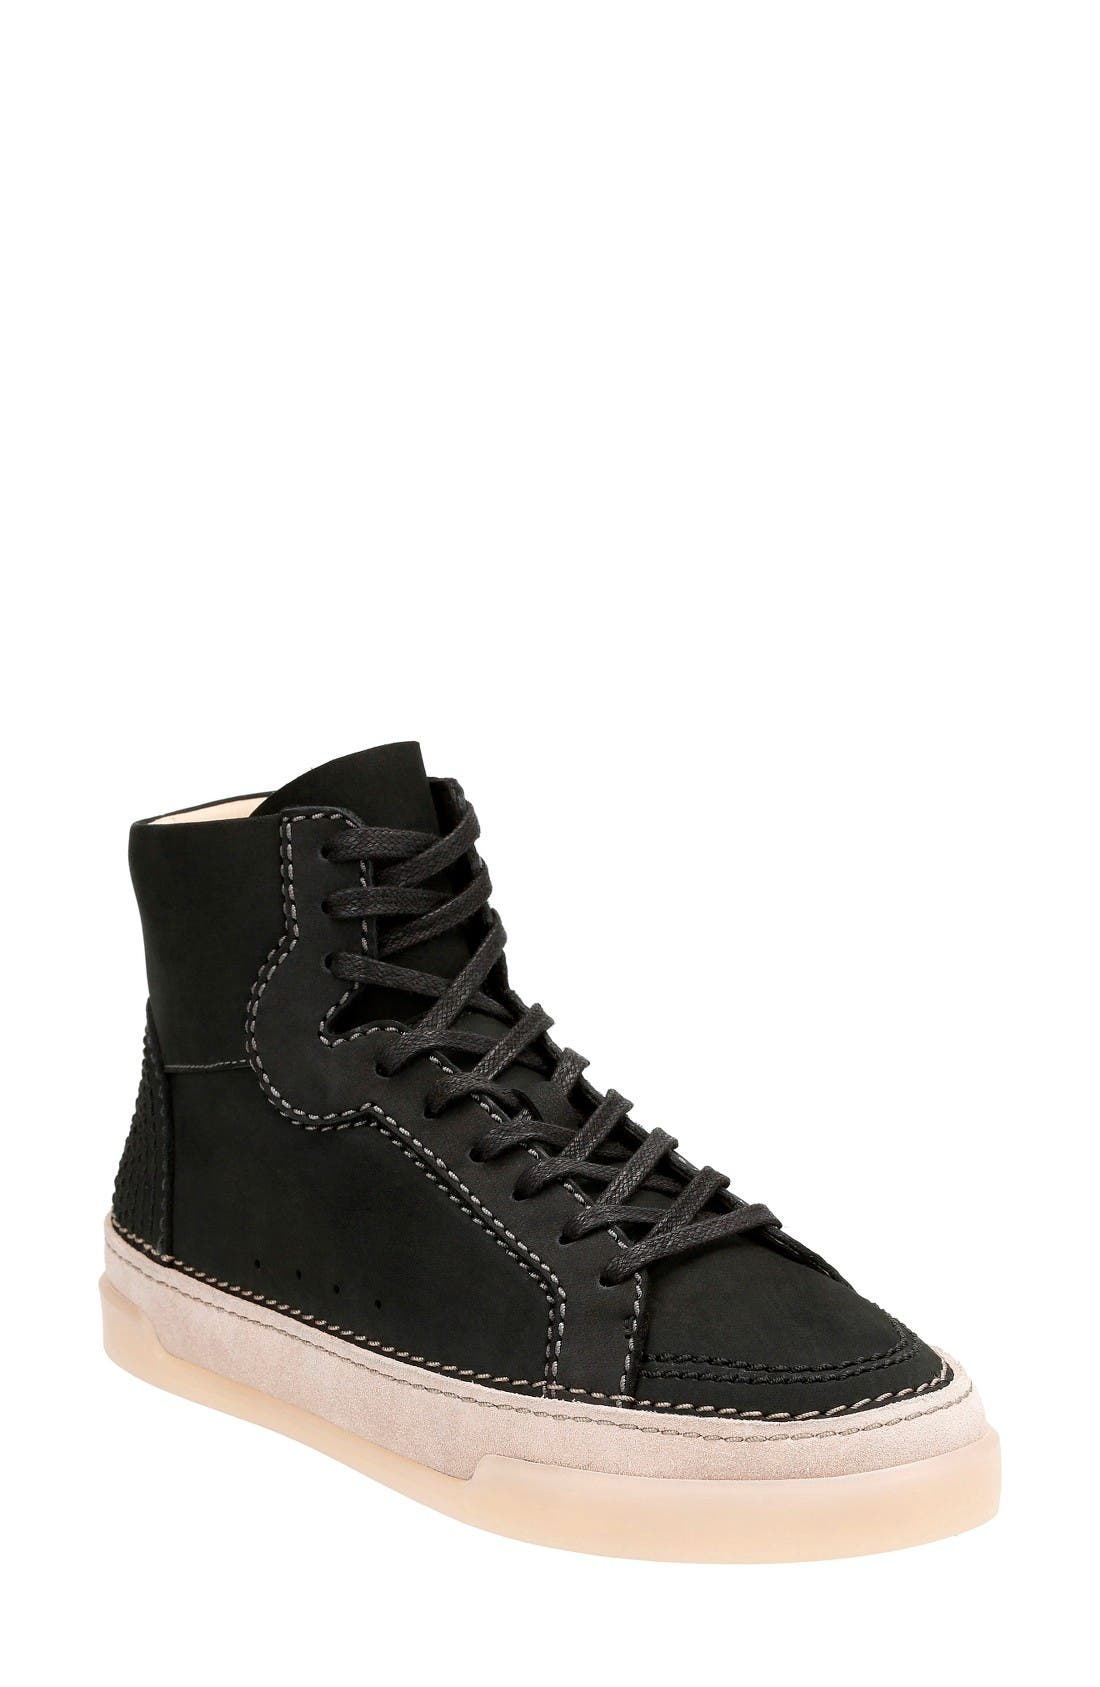 Alternate Image 1 Selected - Clarks® Hidi Haze High Top Sneaker (Women)